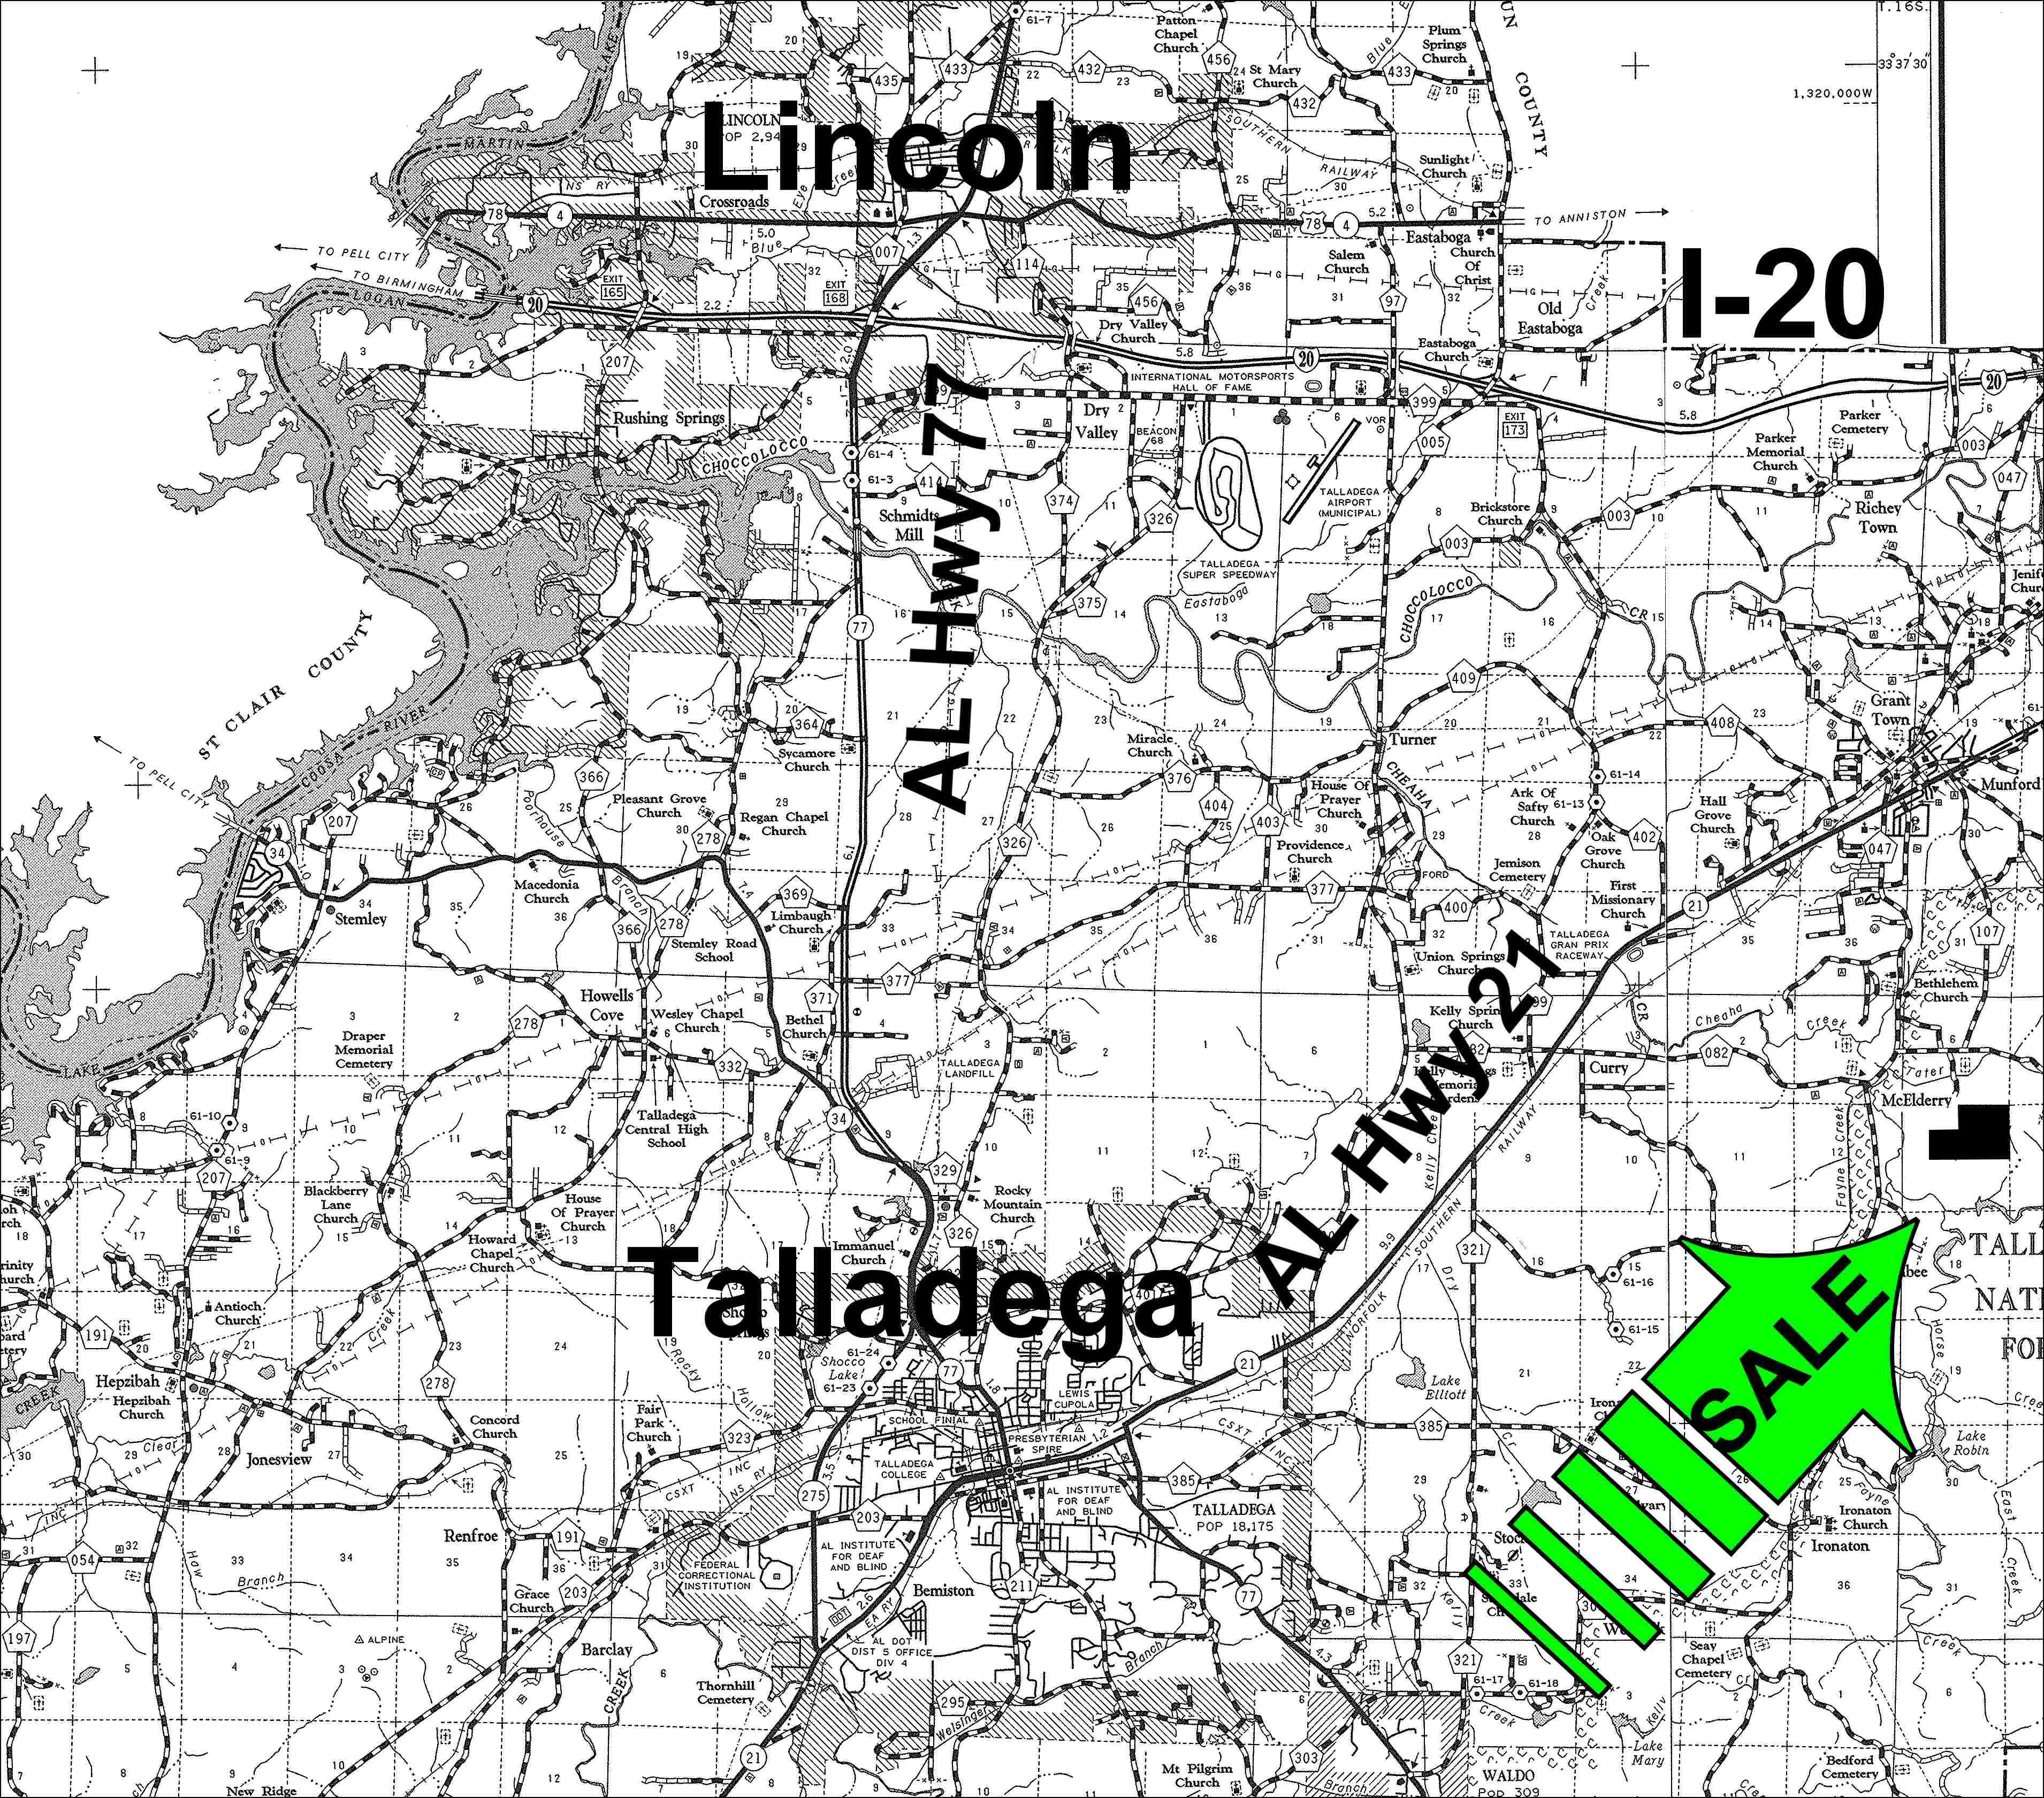 talladega county Talladega county was created by an act of the alabama general assembly on 18 dec 1832, from land ceded by the creek indians it is located near the geographic center of the state, in the.